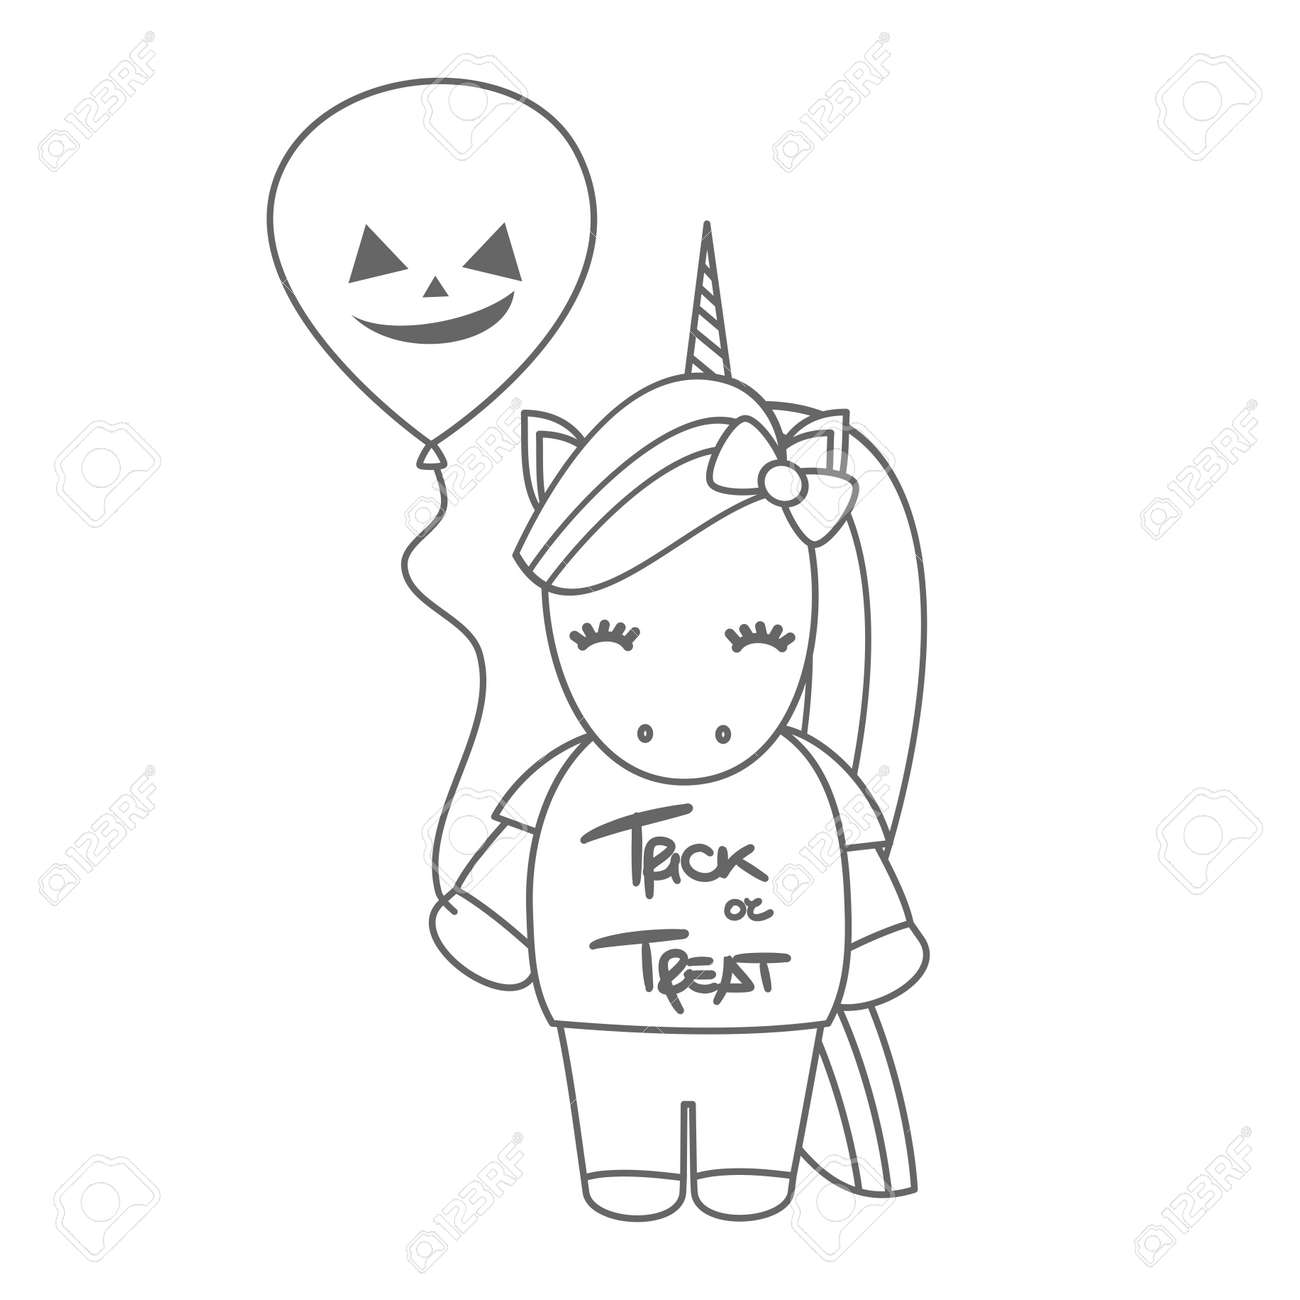 Cute Cartoon Black And White Halloween Vector Illustration With